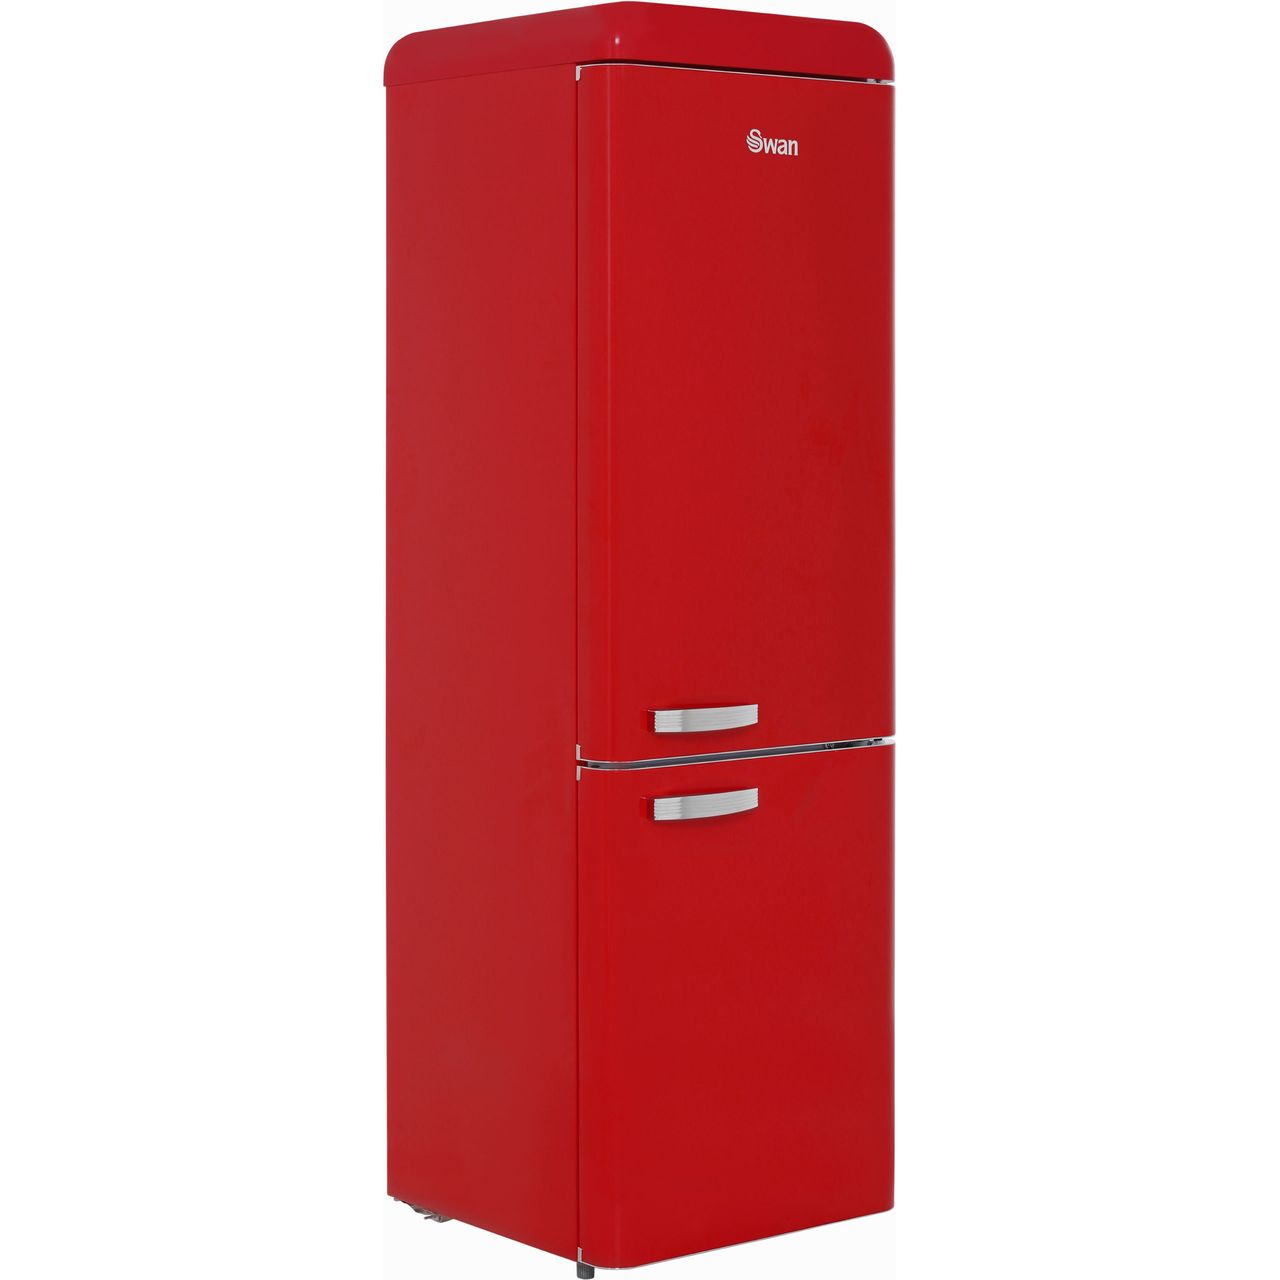 Swan Retro SR11020RN Free Standing Fridge Freezer in Red